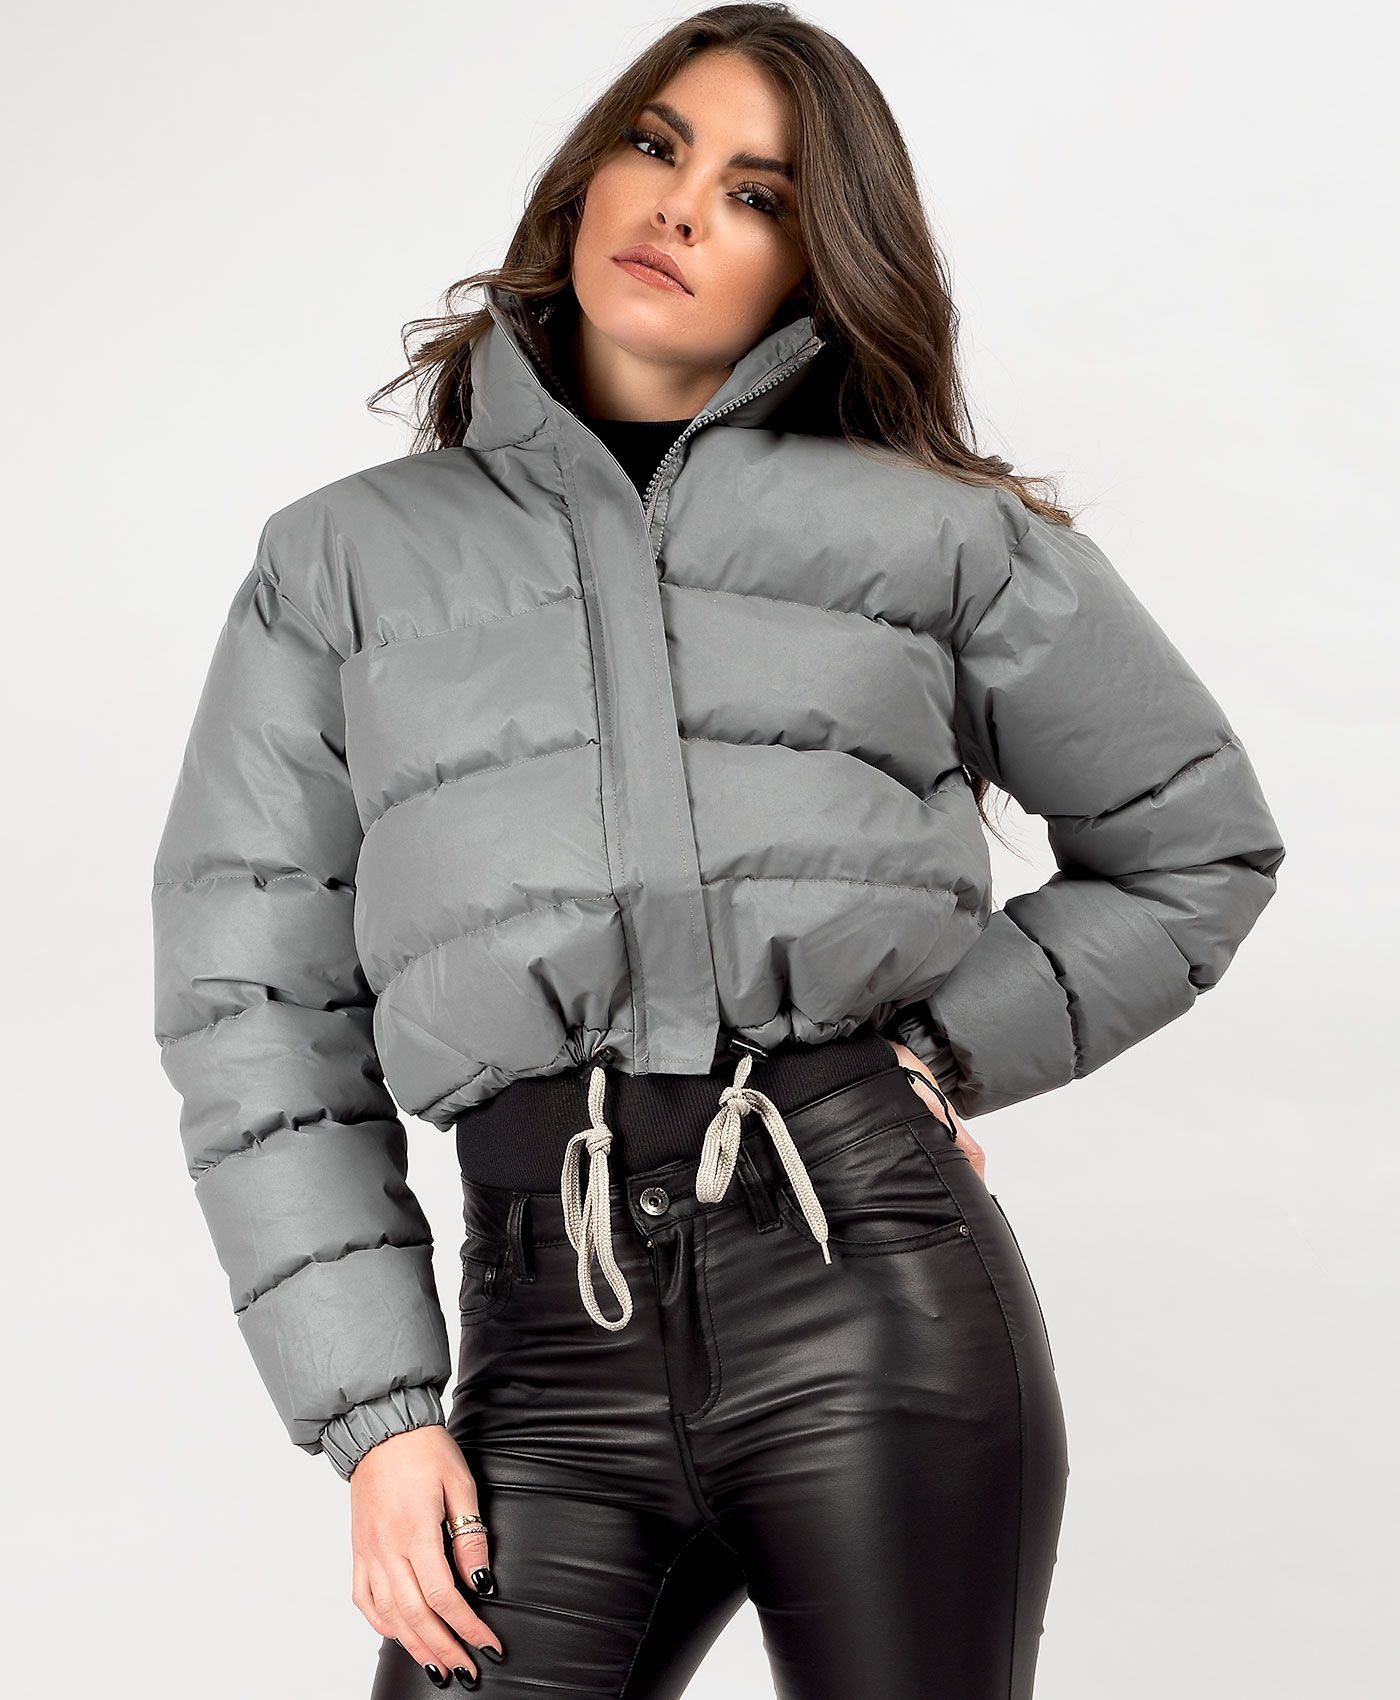 Womens-Reflective-Hi-Visibility-Thick-Puffer-Padded-Quilted-Cropped-Jacket-Coat Indexbild 22